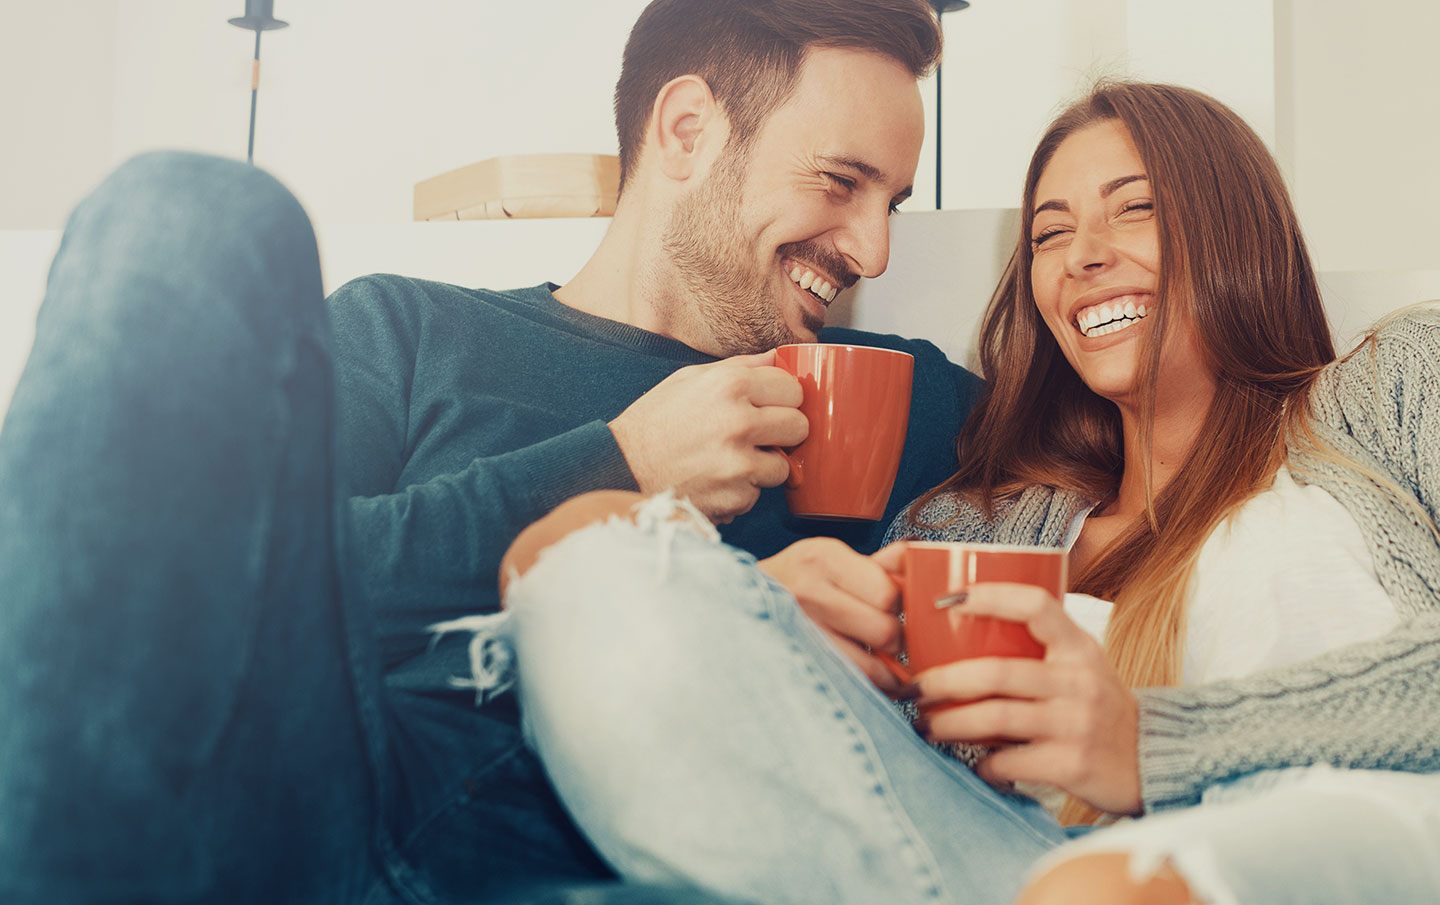 Man and a Woman laughing and enjoying a cup of coffee